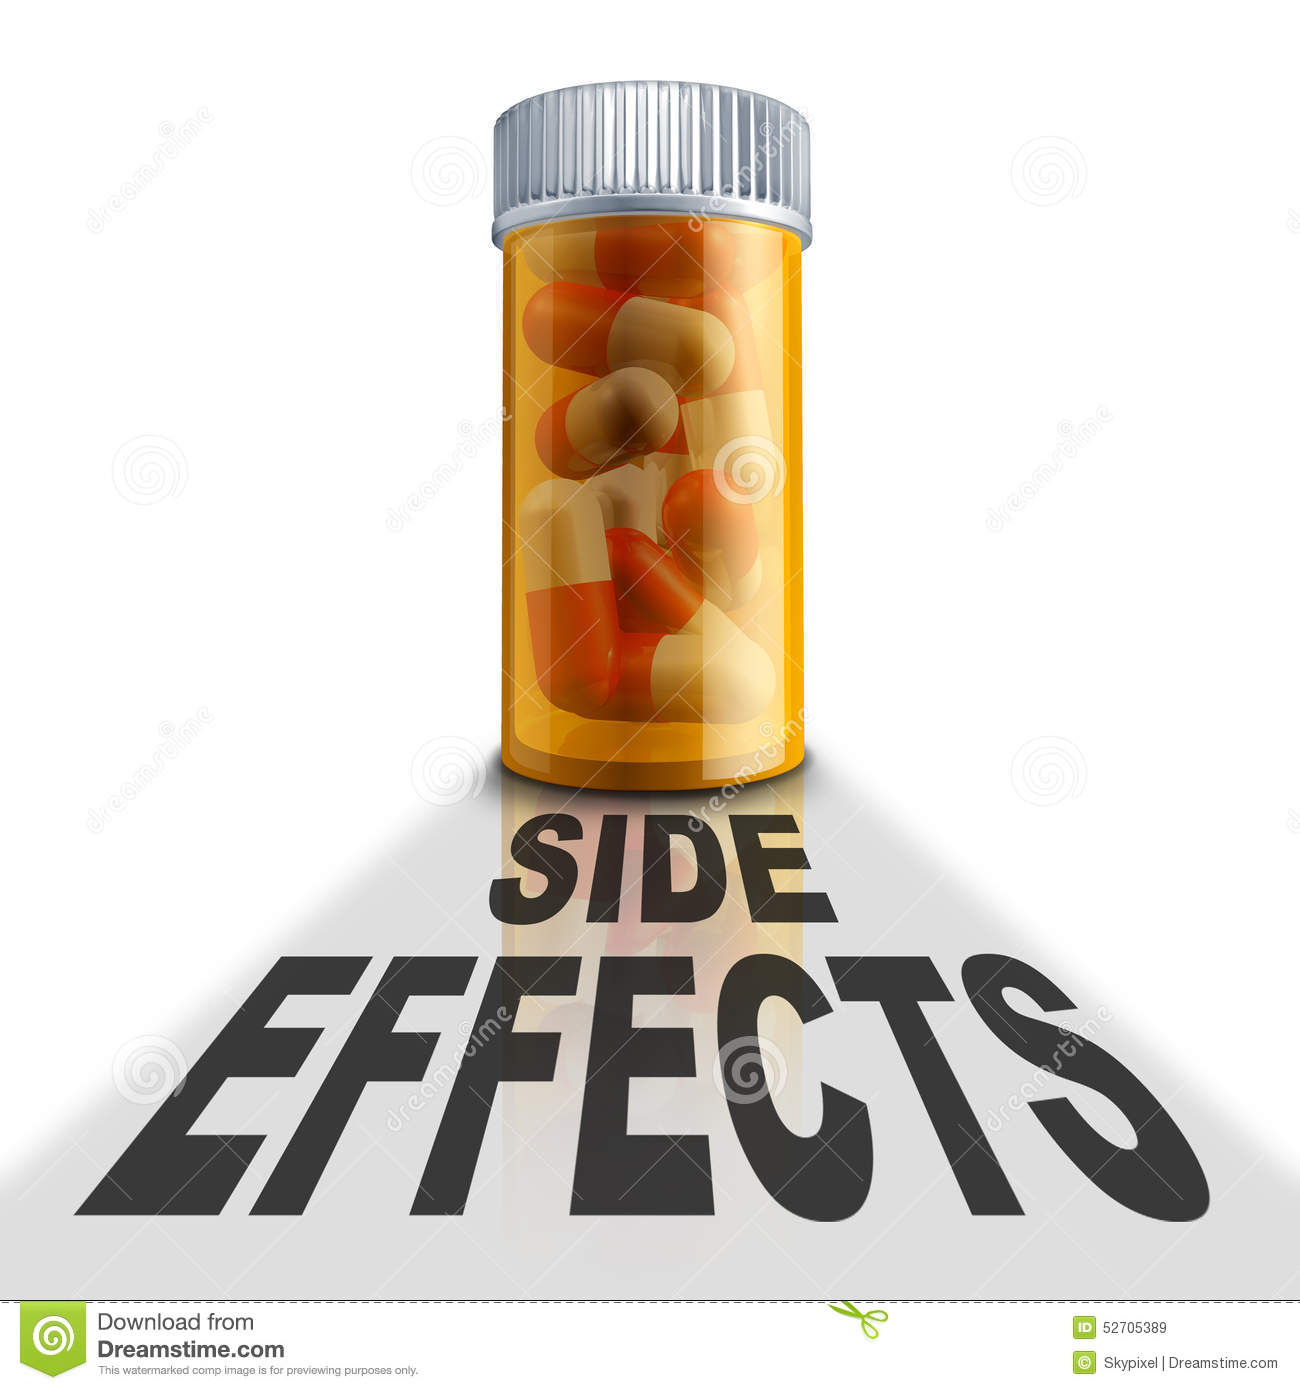 prescription drug and medication Many unethical doctors enable their drug-addicted patients.